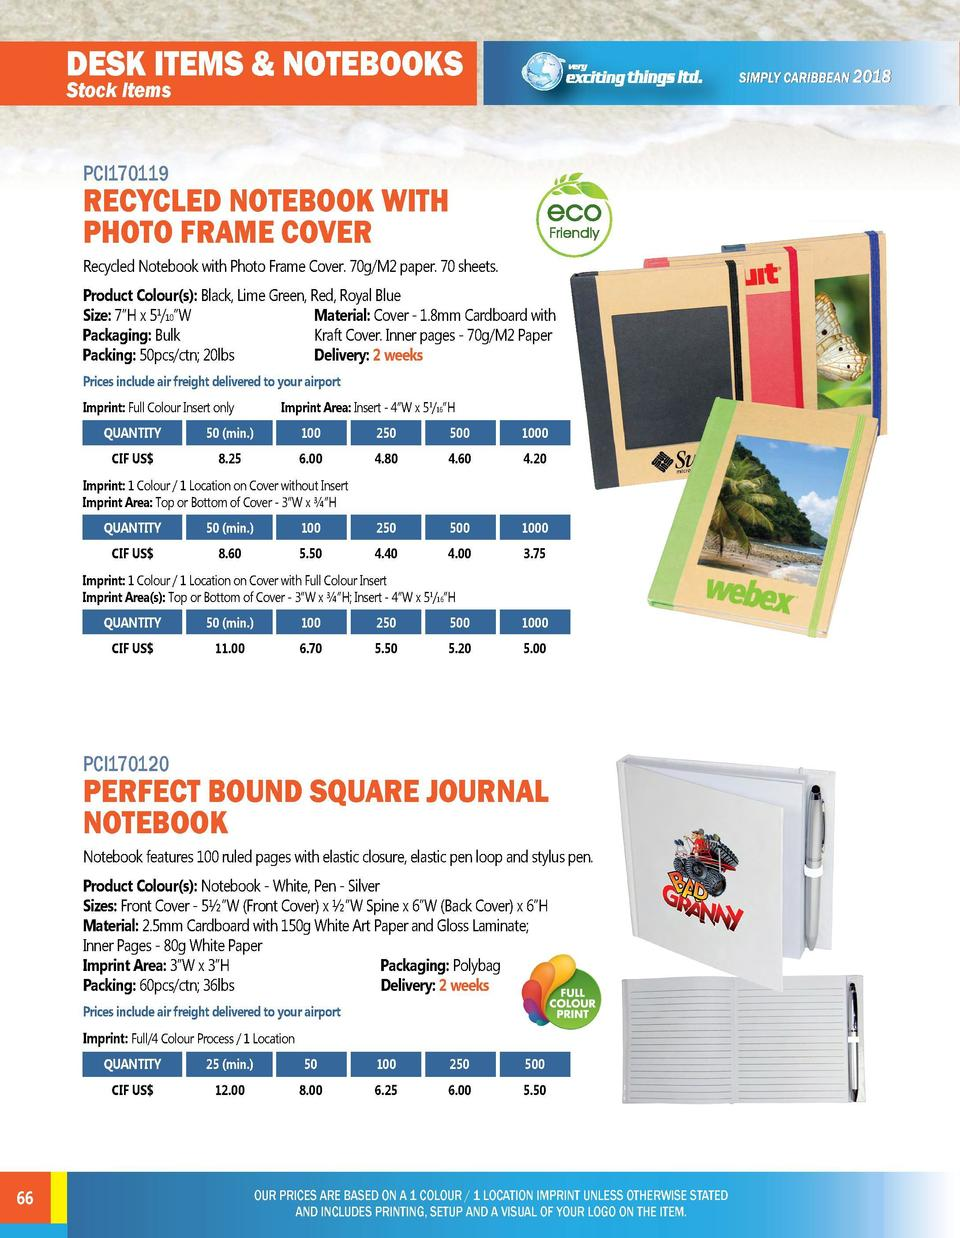 DESK ITEMS   NOTEBOOKS  DESK ITEMS   NOTEBOOKS  Stock Items  Stock Items  PCI170119  PCI170121  RECYCLED NOTEBOOK WITH PHO...